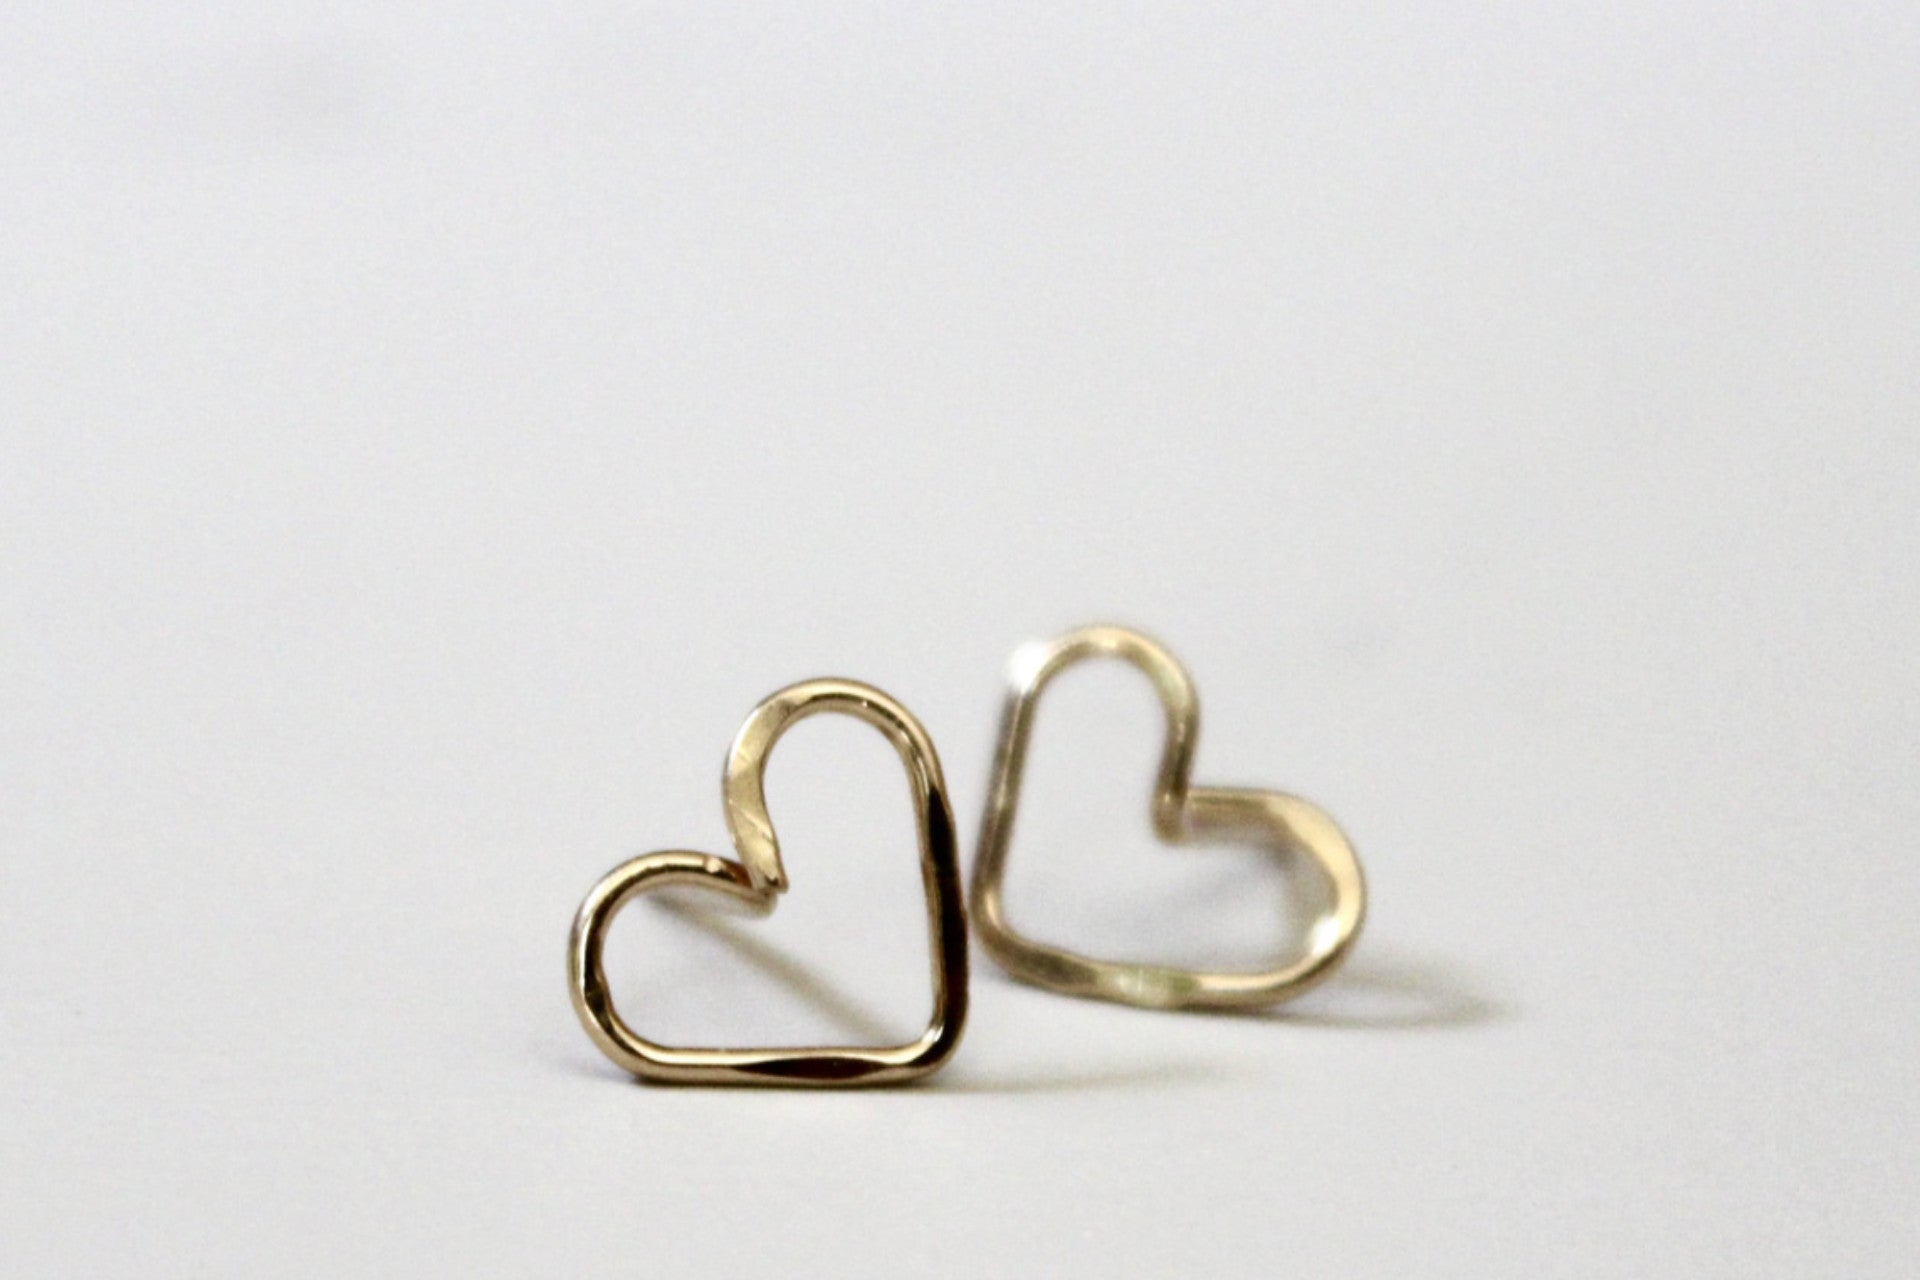 Heart Earrings - Designed By Lei